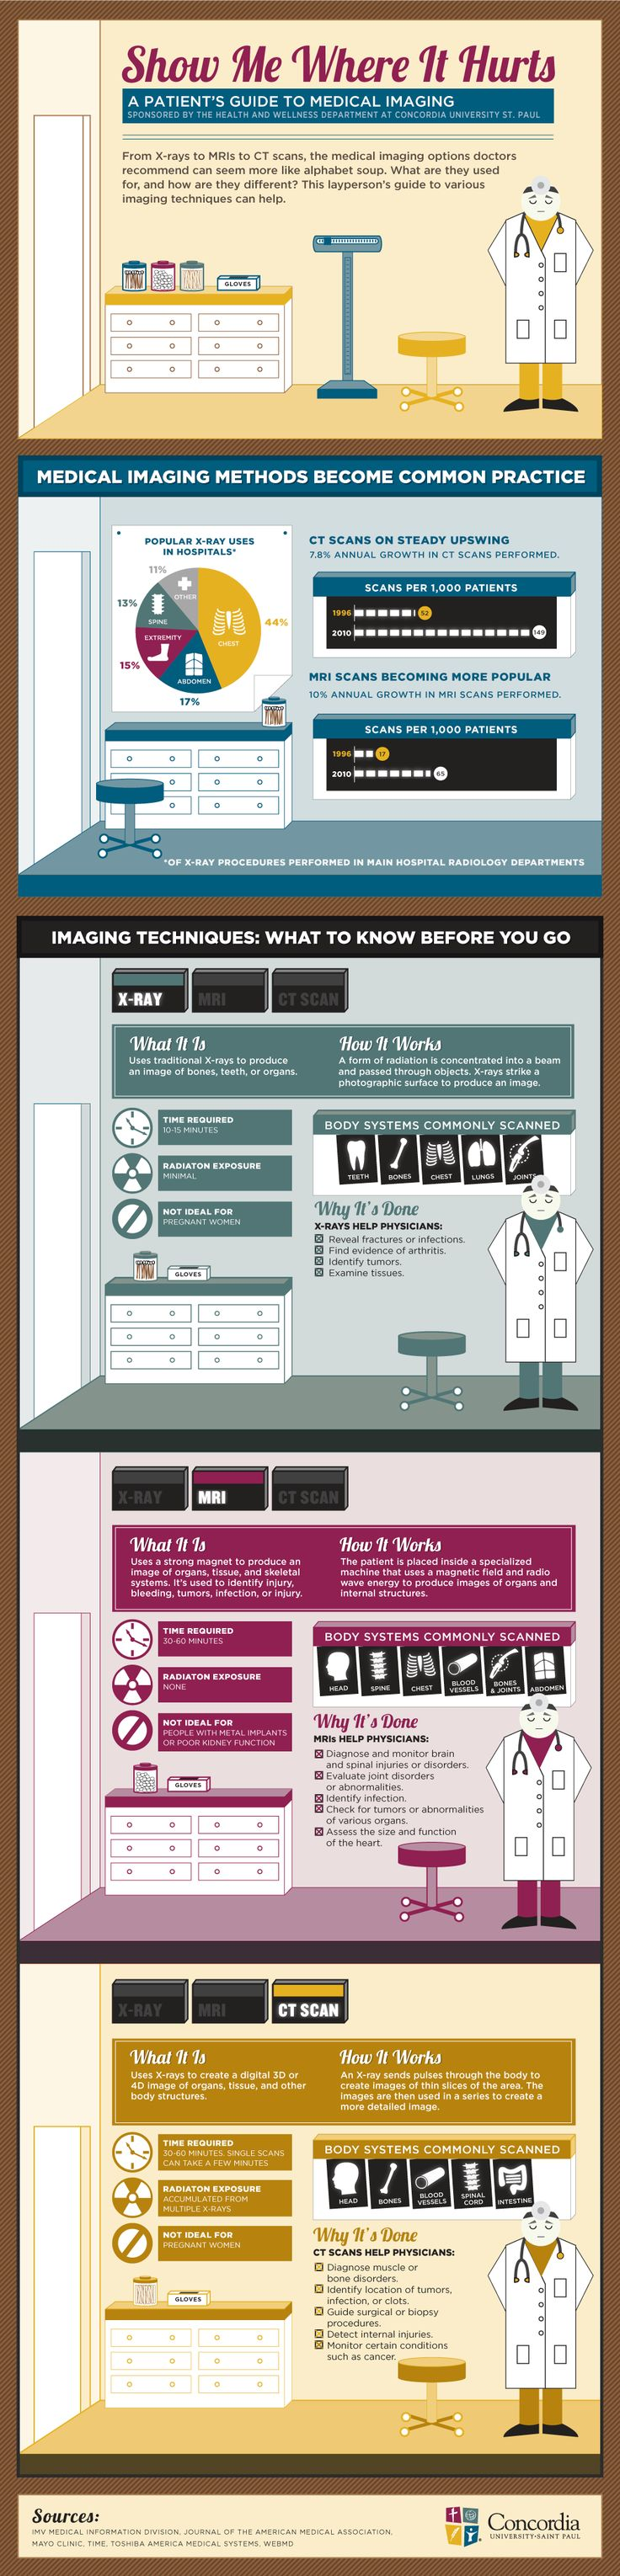 Show Me Where it Hurts - Infographic: Radiology services can be confusing for patients.  This infographic by Concordia University, St. Paul is a great resource for patients and can serve as a guide for commonly used imaging techniques.